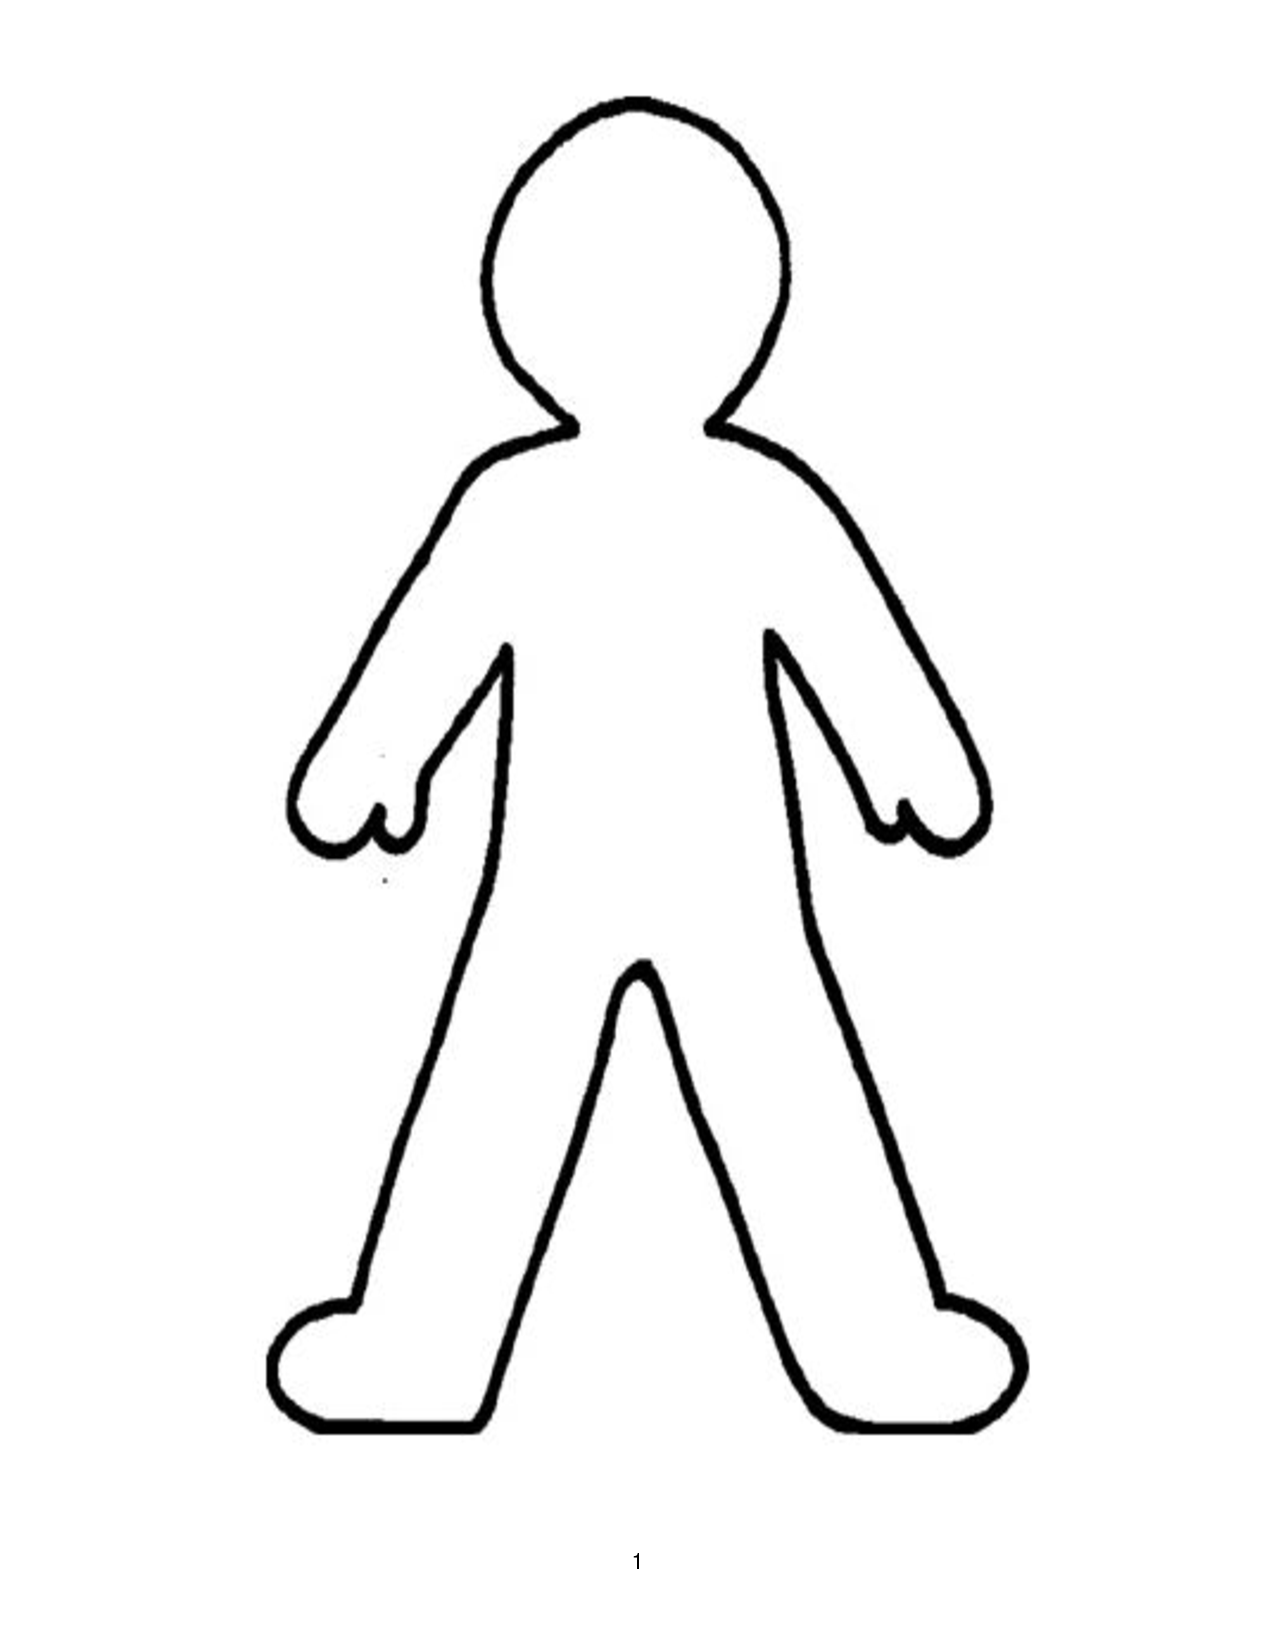 Man Silhouette Outline at GetDrawings